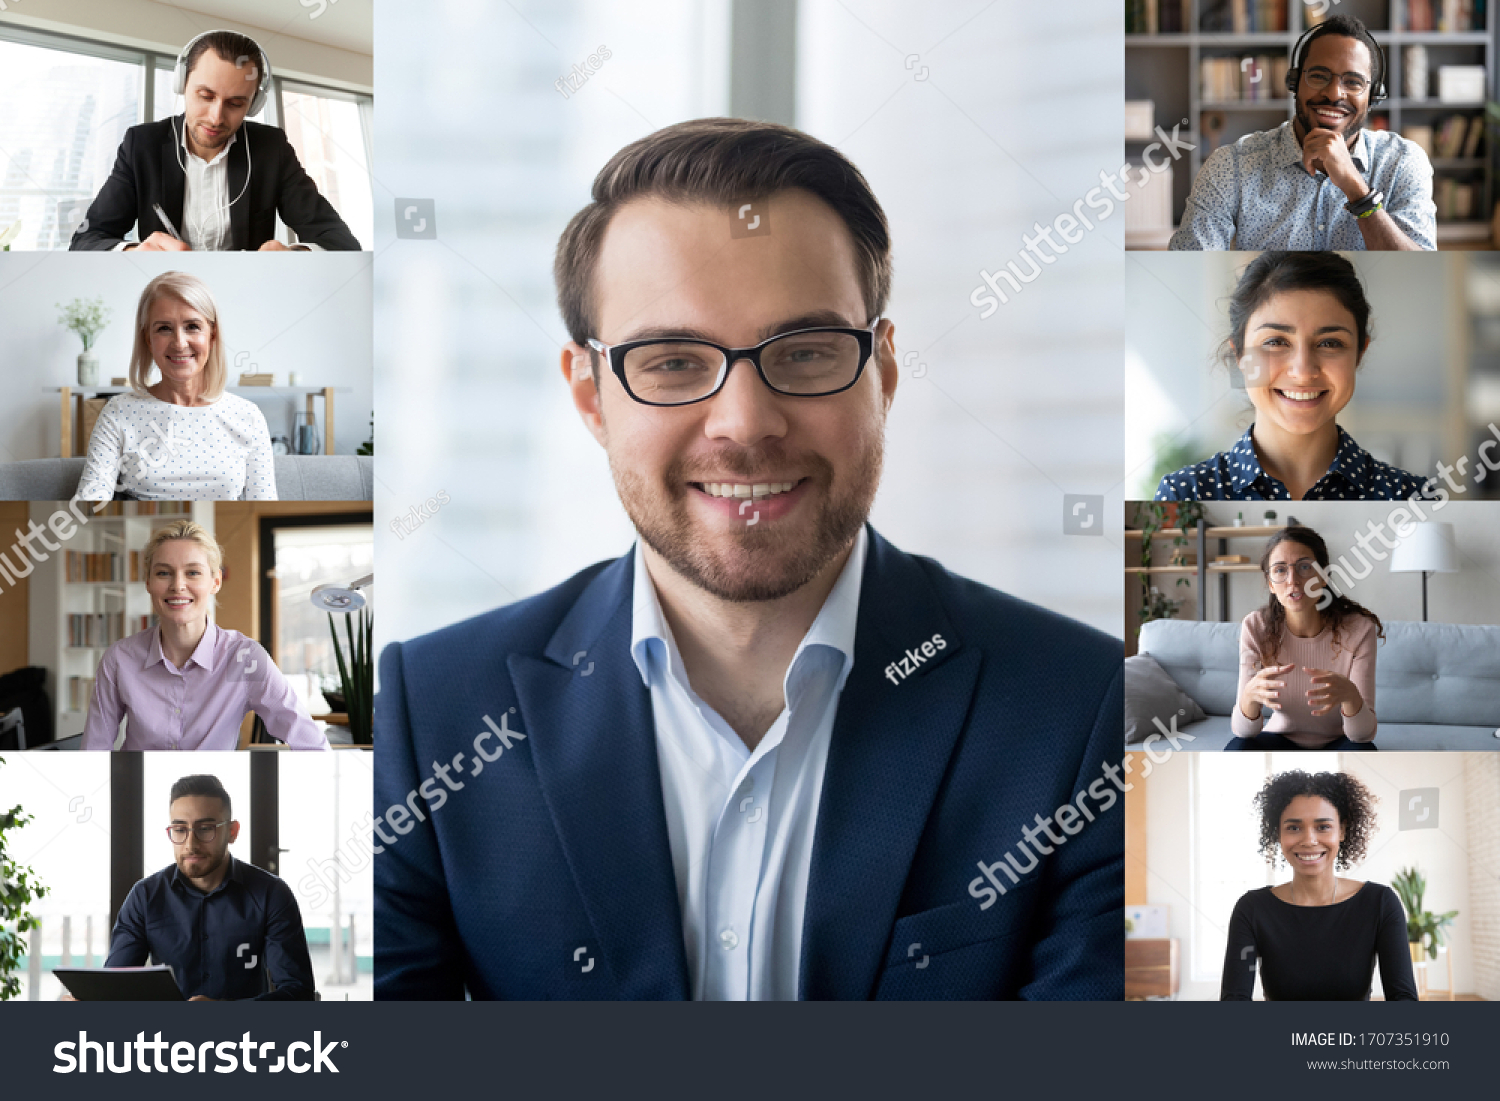 Full frame image computer screen webcamera view lot of multi racial businesspeople involved in group video call. Modern app technologies usage, distant communication, on-line meeting activity concept #1707351910